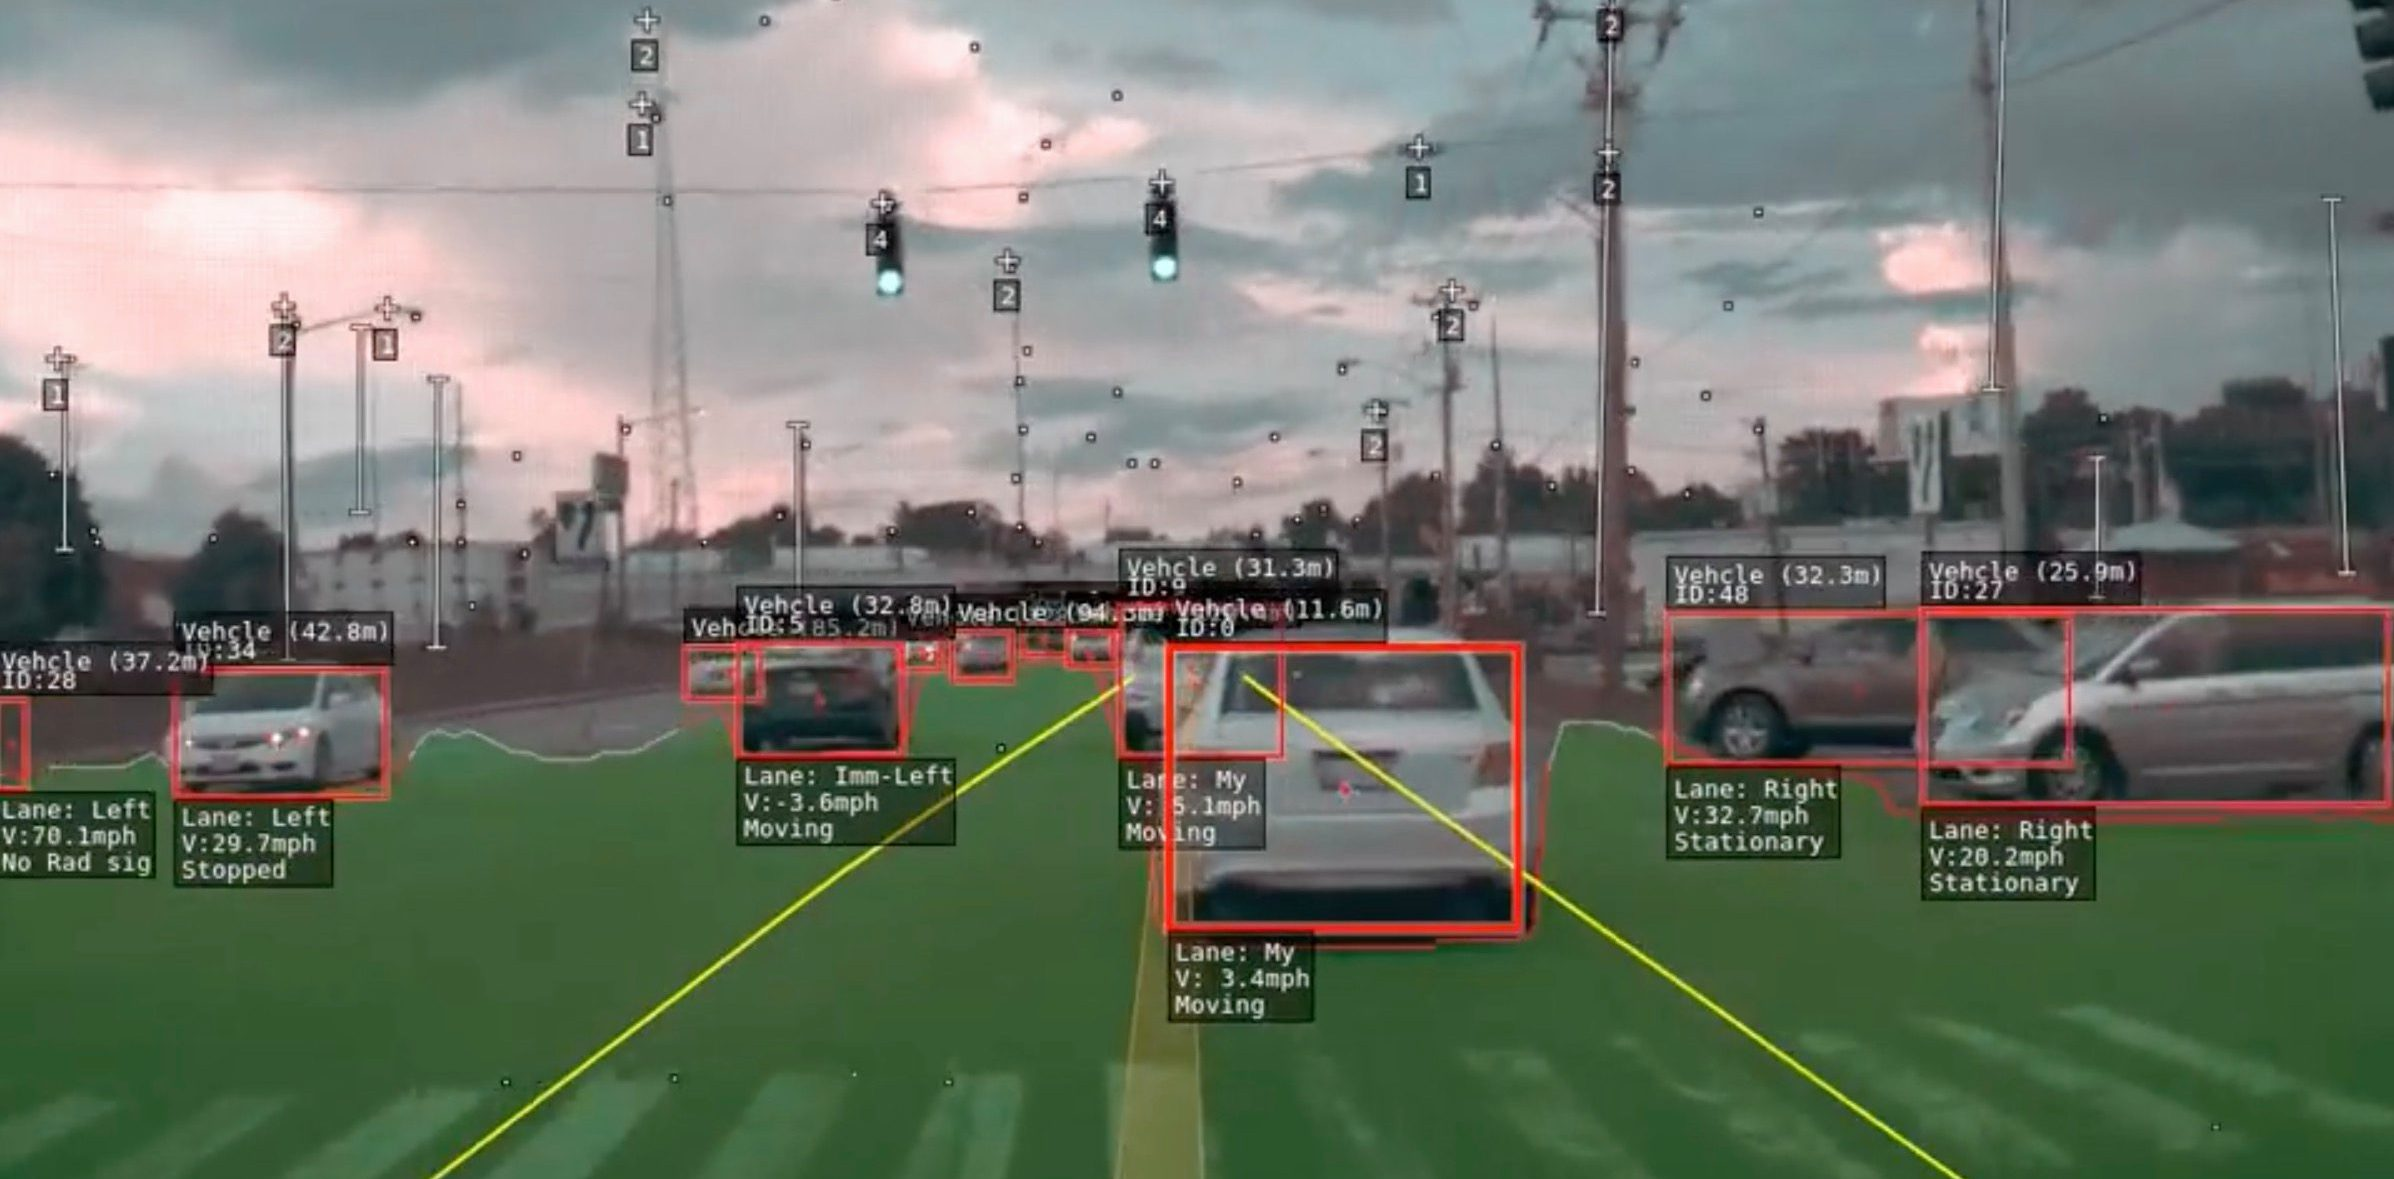 Tesla deploys massive new Autopilot neural net in v9, impressive new capabilities, report says